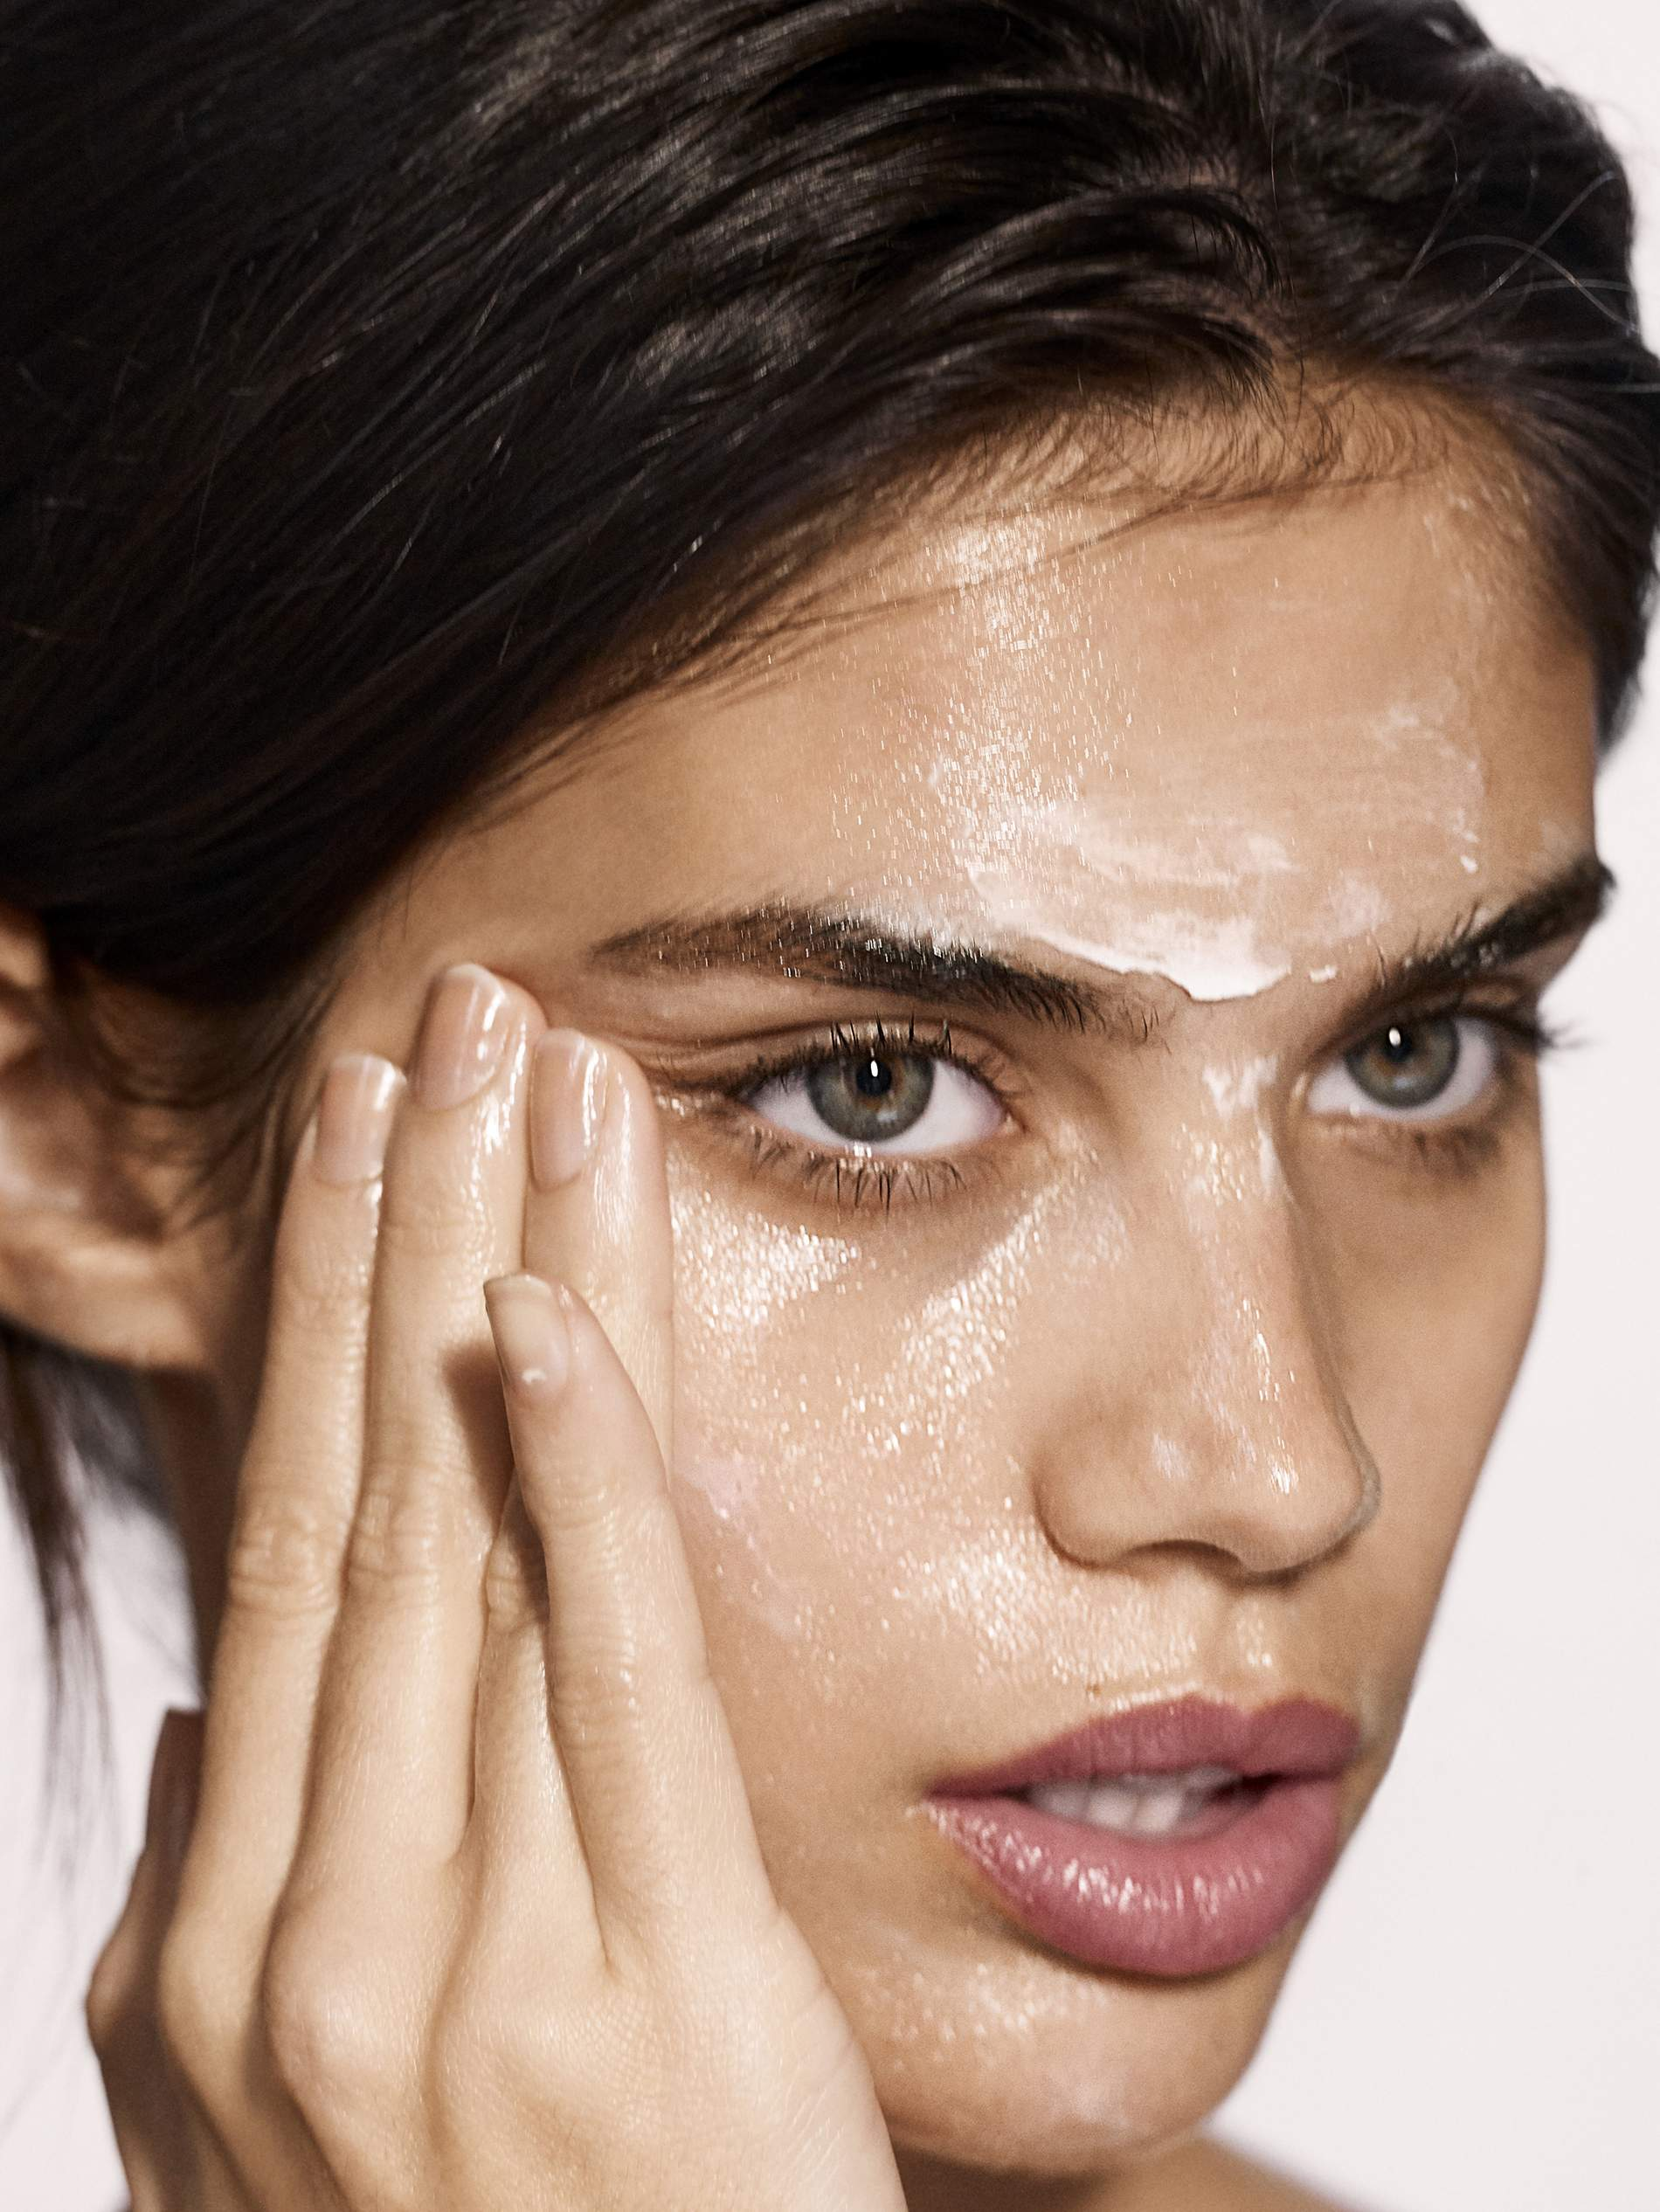 Best Skincare Routine: The Basics Everyone Should Know | PORTER